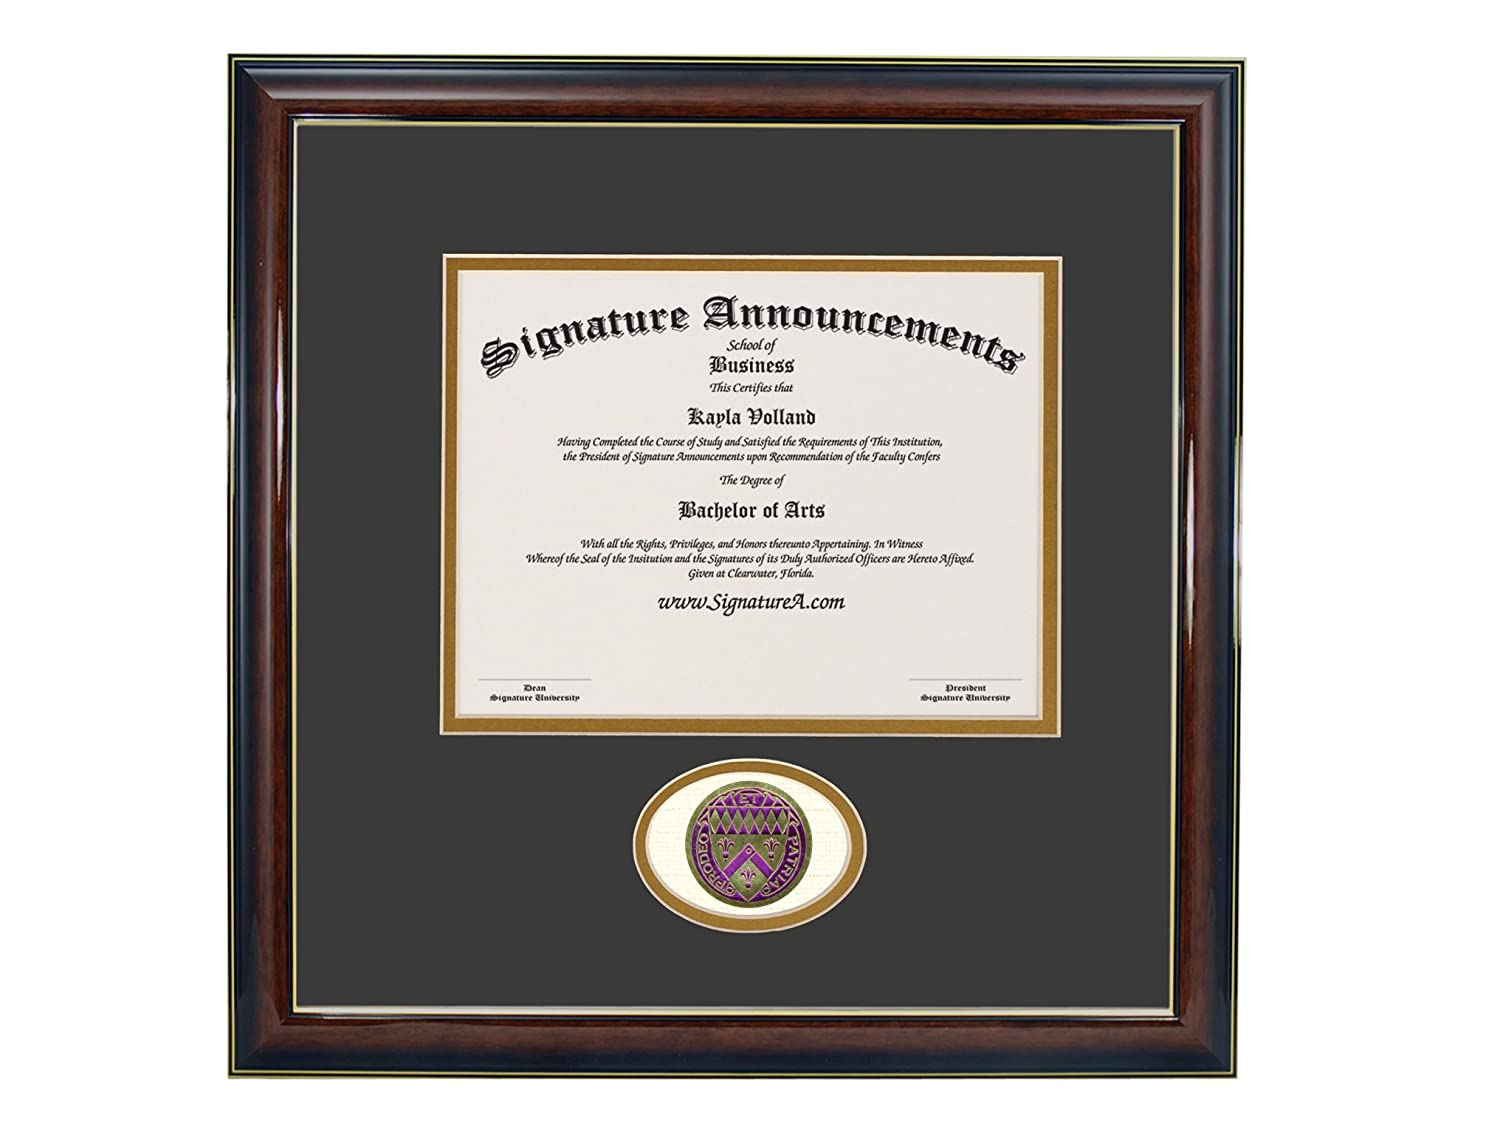 Professional//Doctor Sculpted Foil Seal Graduation Diploma Frame 16 x 16 Gold Accent Gloss Mahogany Signature Announcements Loras-College Undergraduate